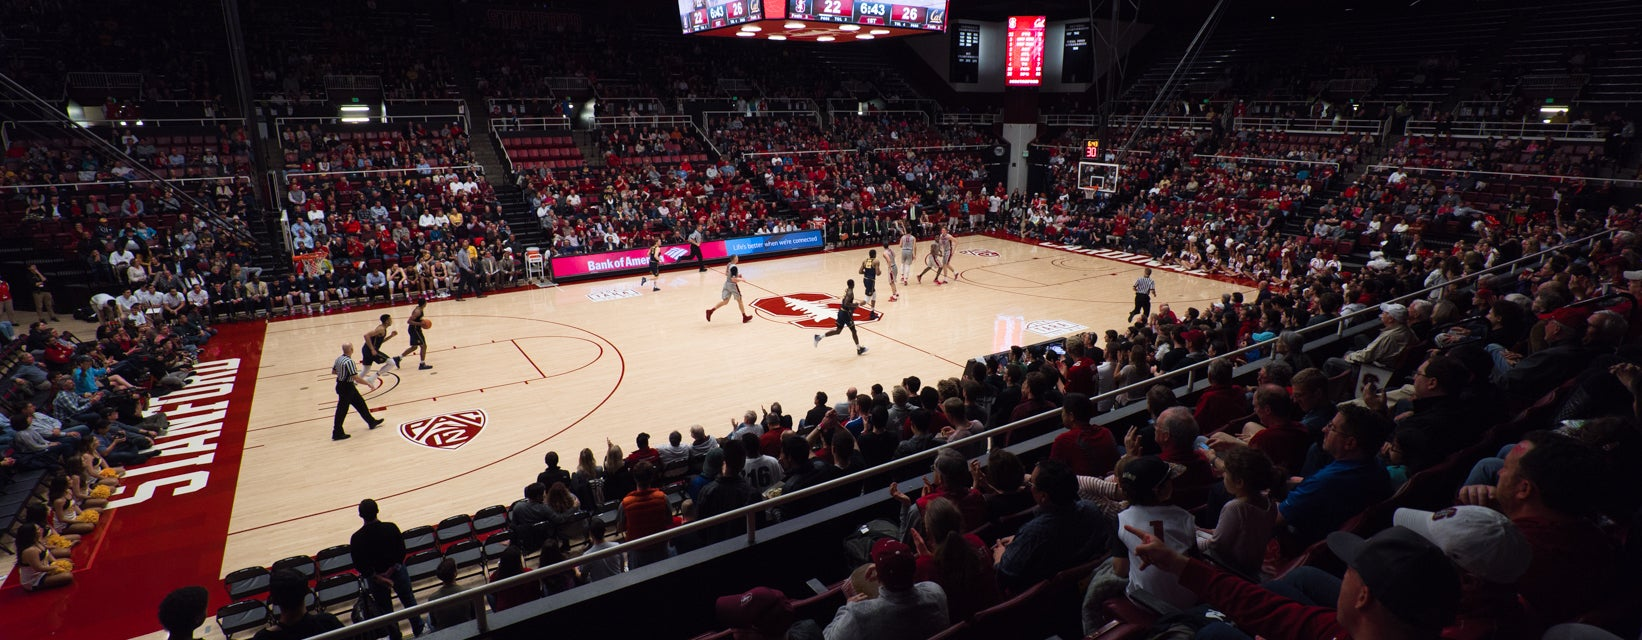 Stanford Basketball Tickets